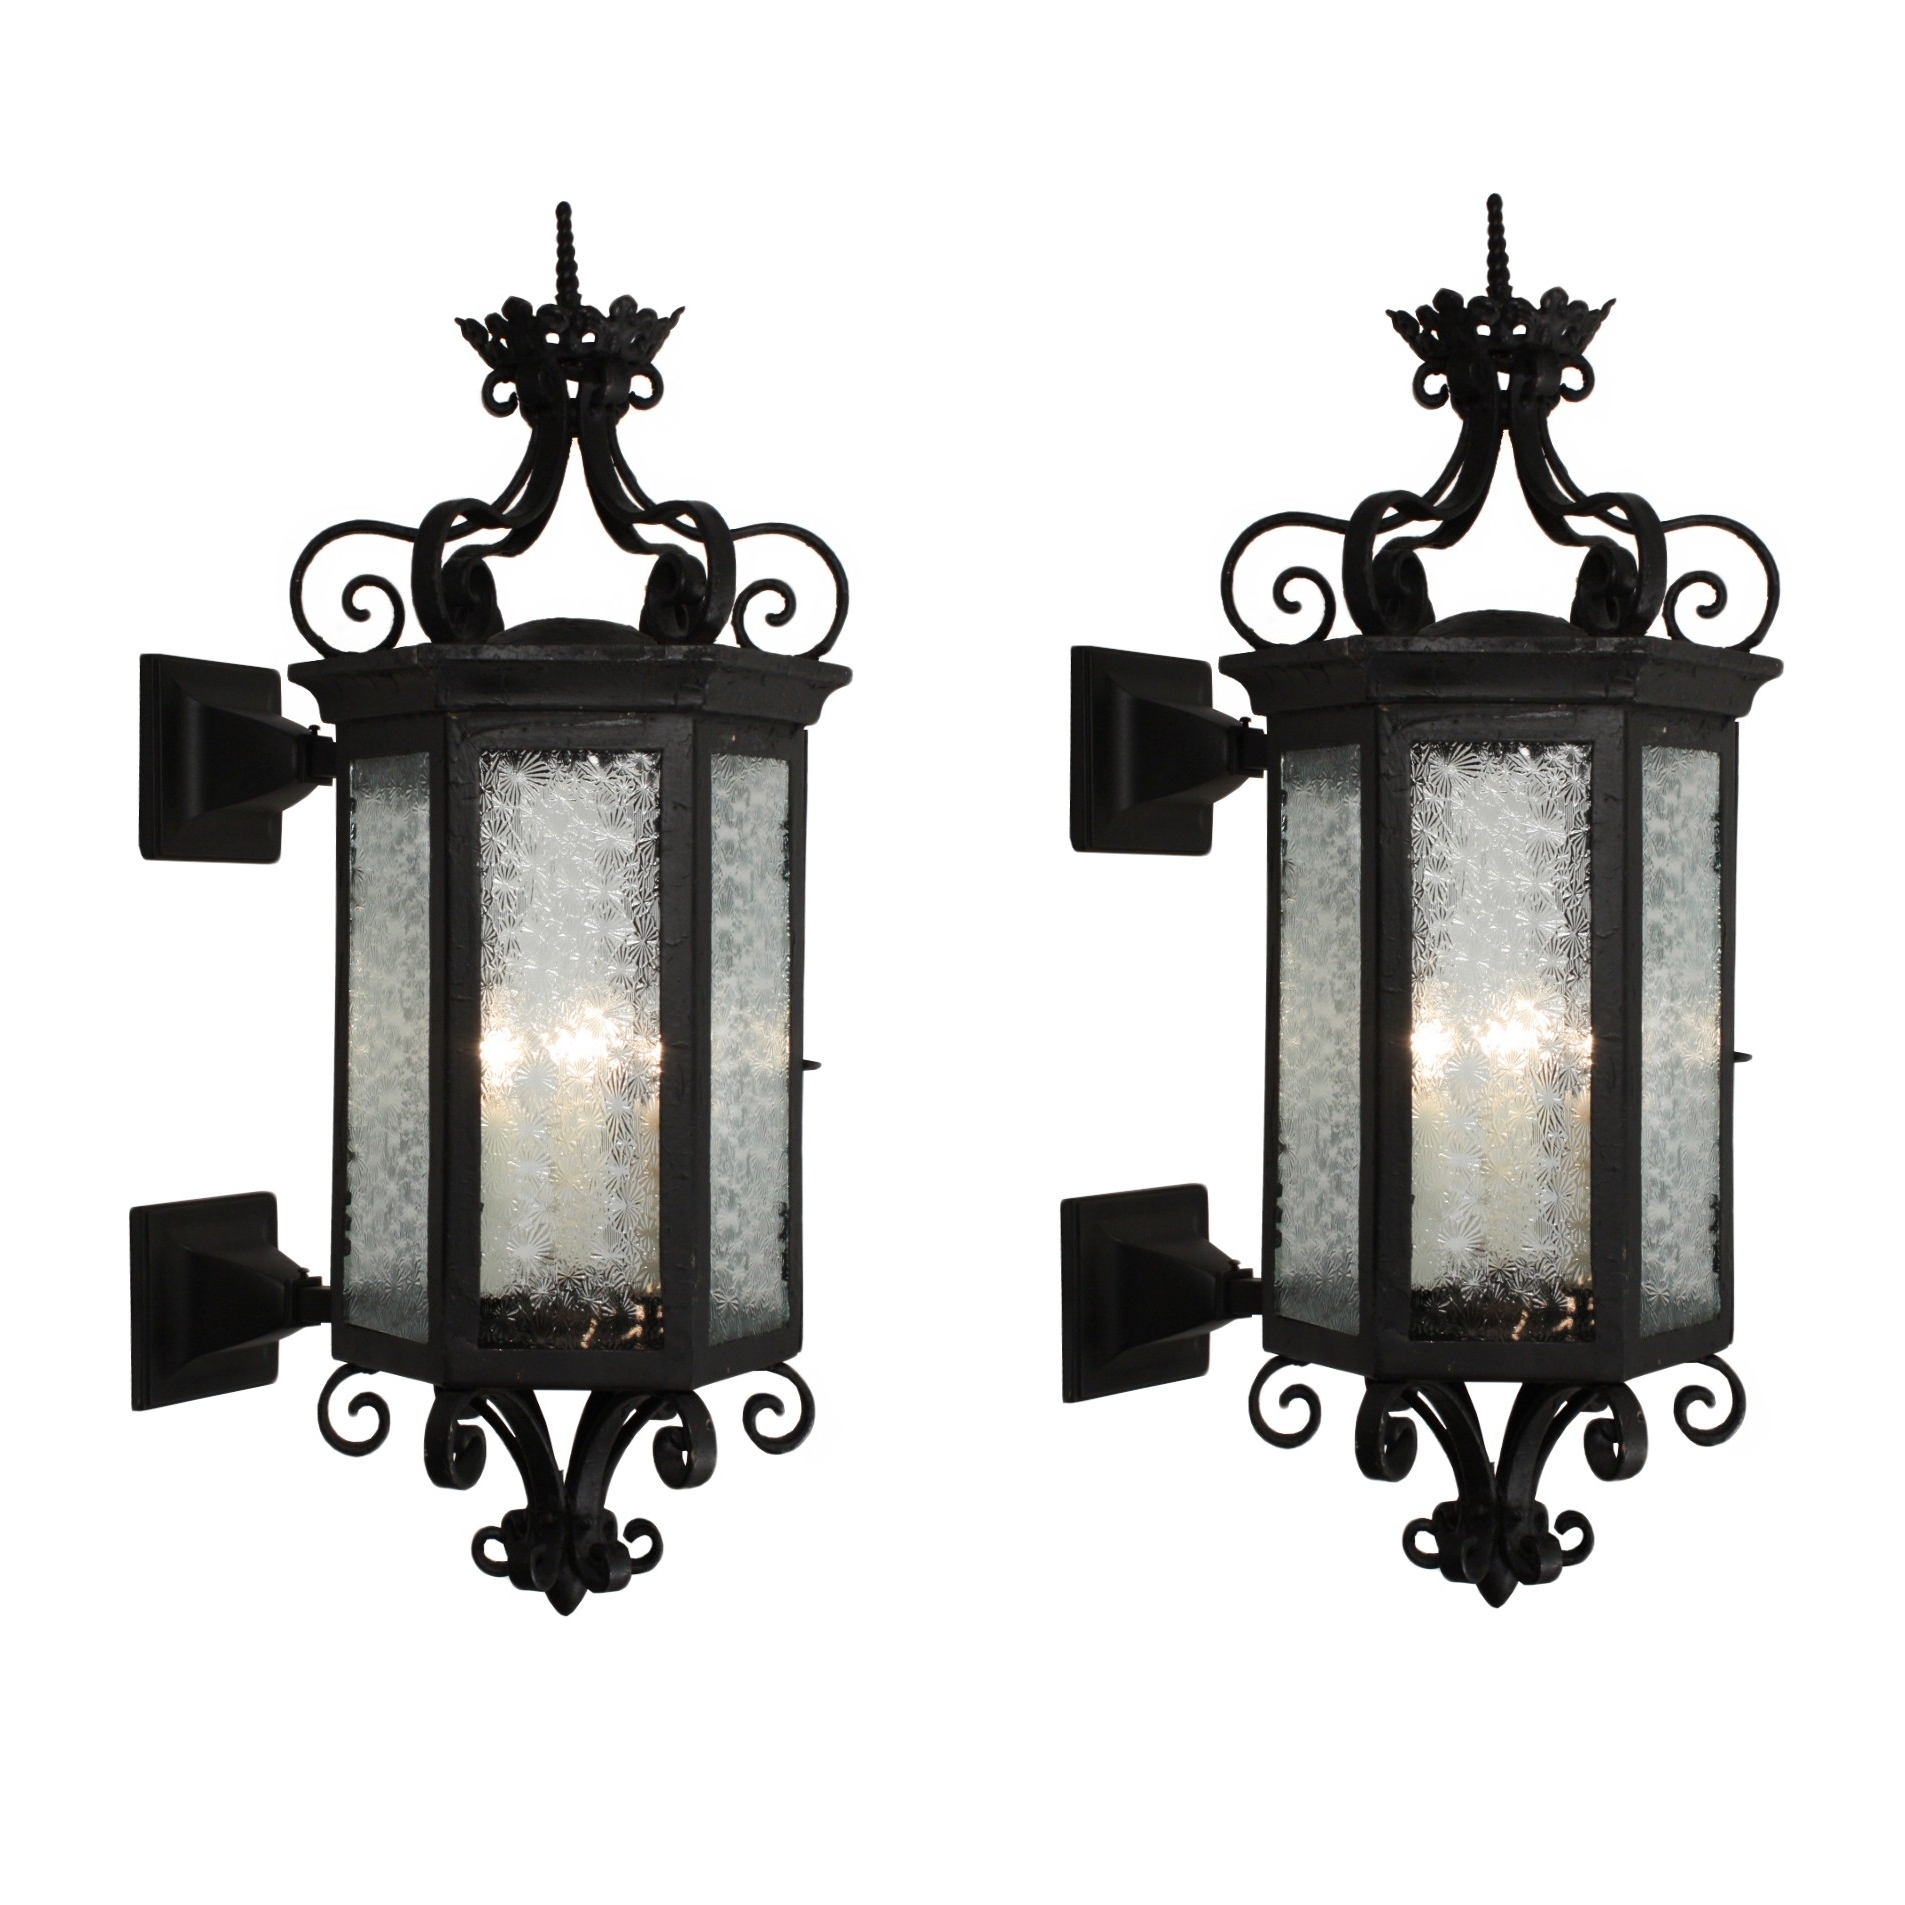 Preferred Outdoor Exterior Lanterns Intended For Substantial Pair Antique Iron Exterior Lantern Sconces Wall Sconce (View 18 of 20)